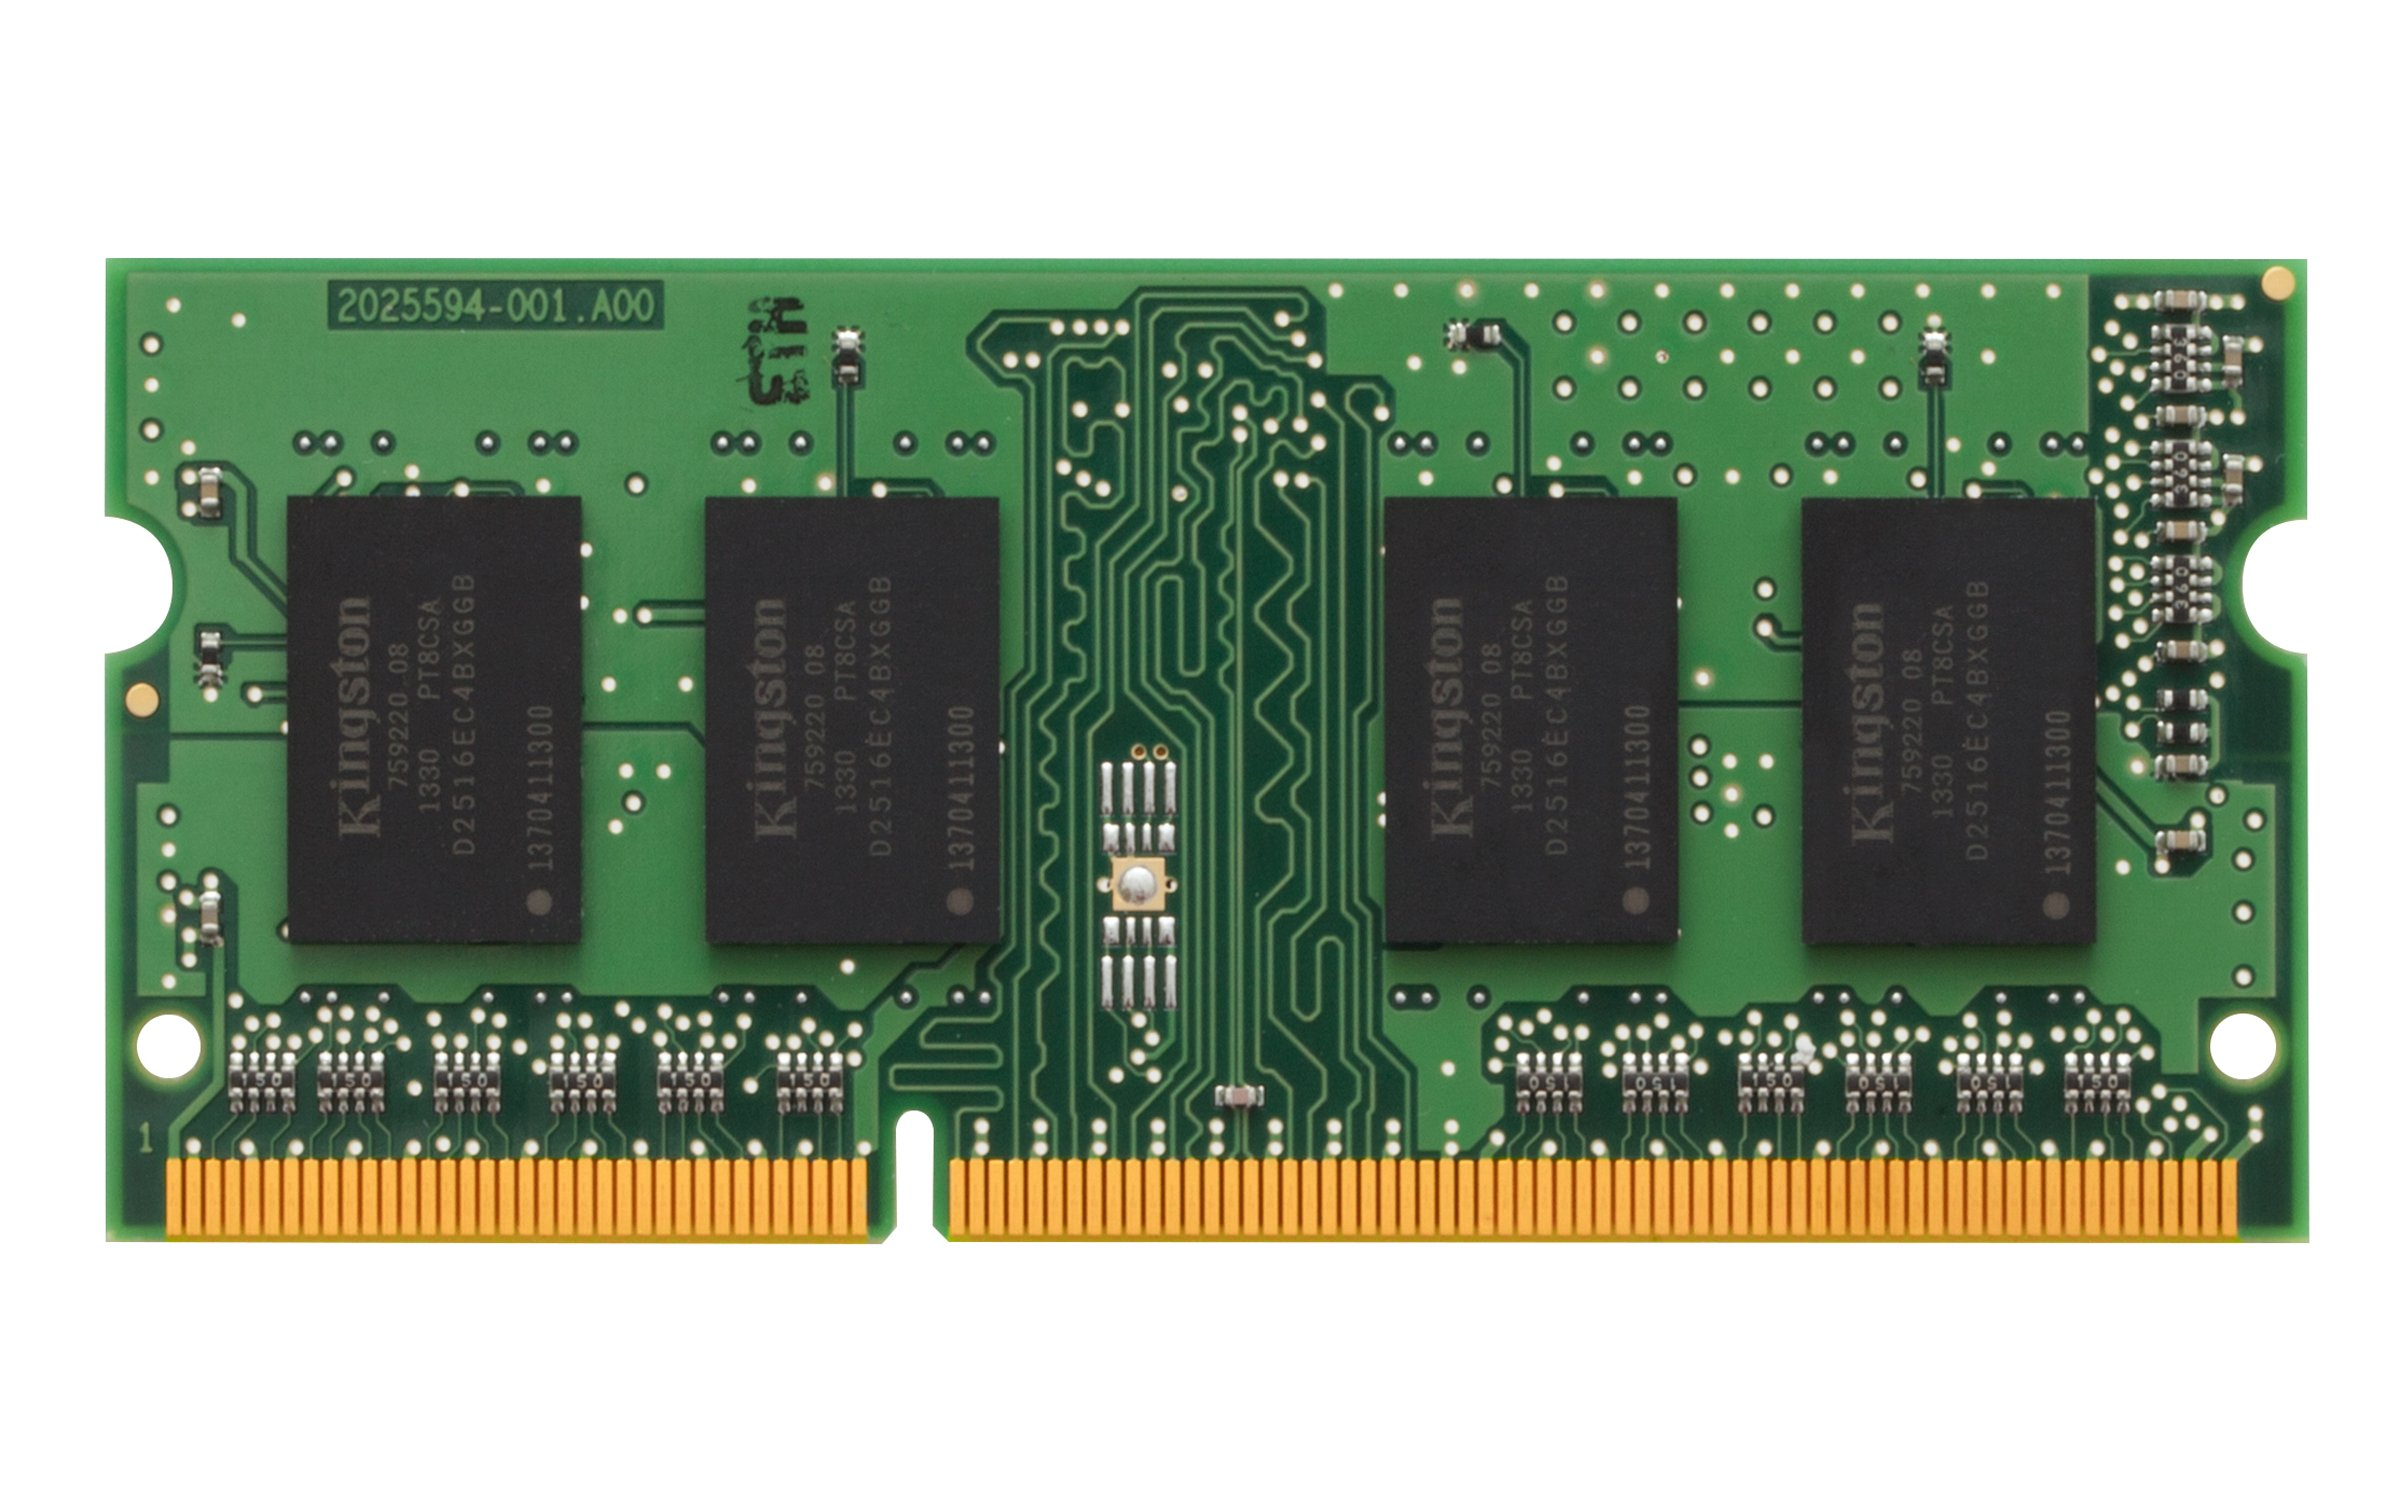 Kingston 8gb Module - Ddr3 1333mhz - 8 Gb - Ddr3 Sdram - 1333 Mhz - 204-pin - Sodimm (kcp313sd8-8)